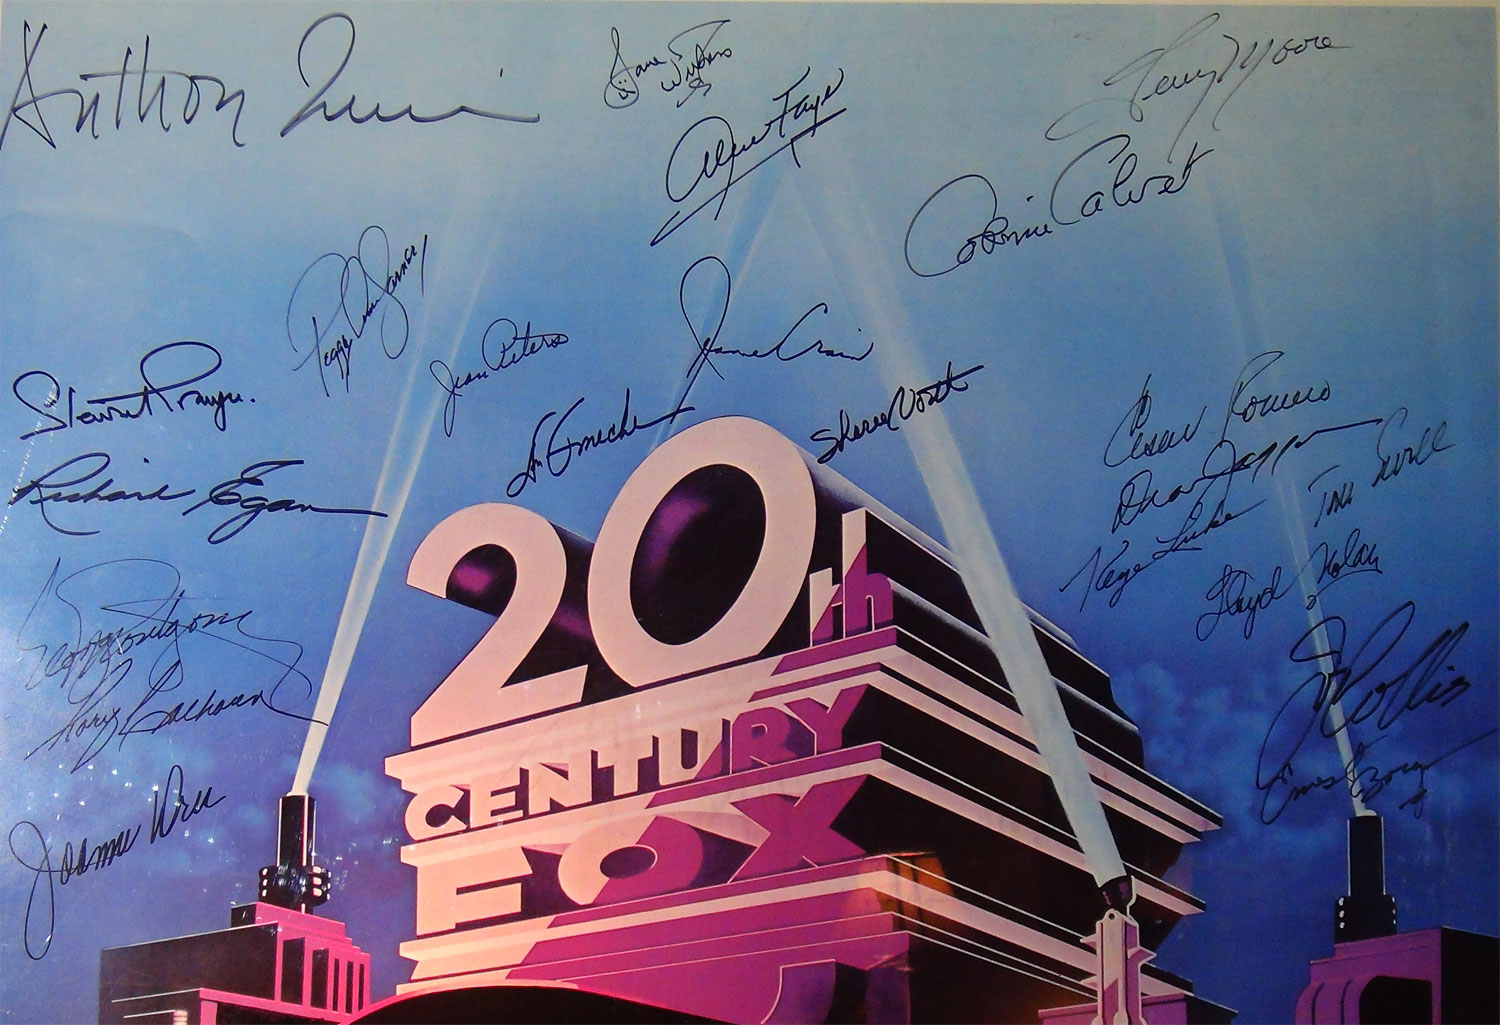 The Stars of 20th Century Fox Pictures, Autographed Poster